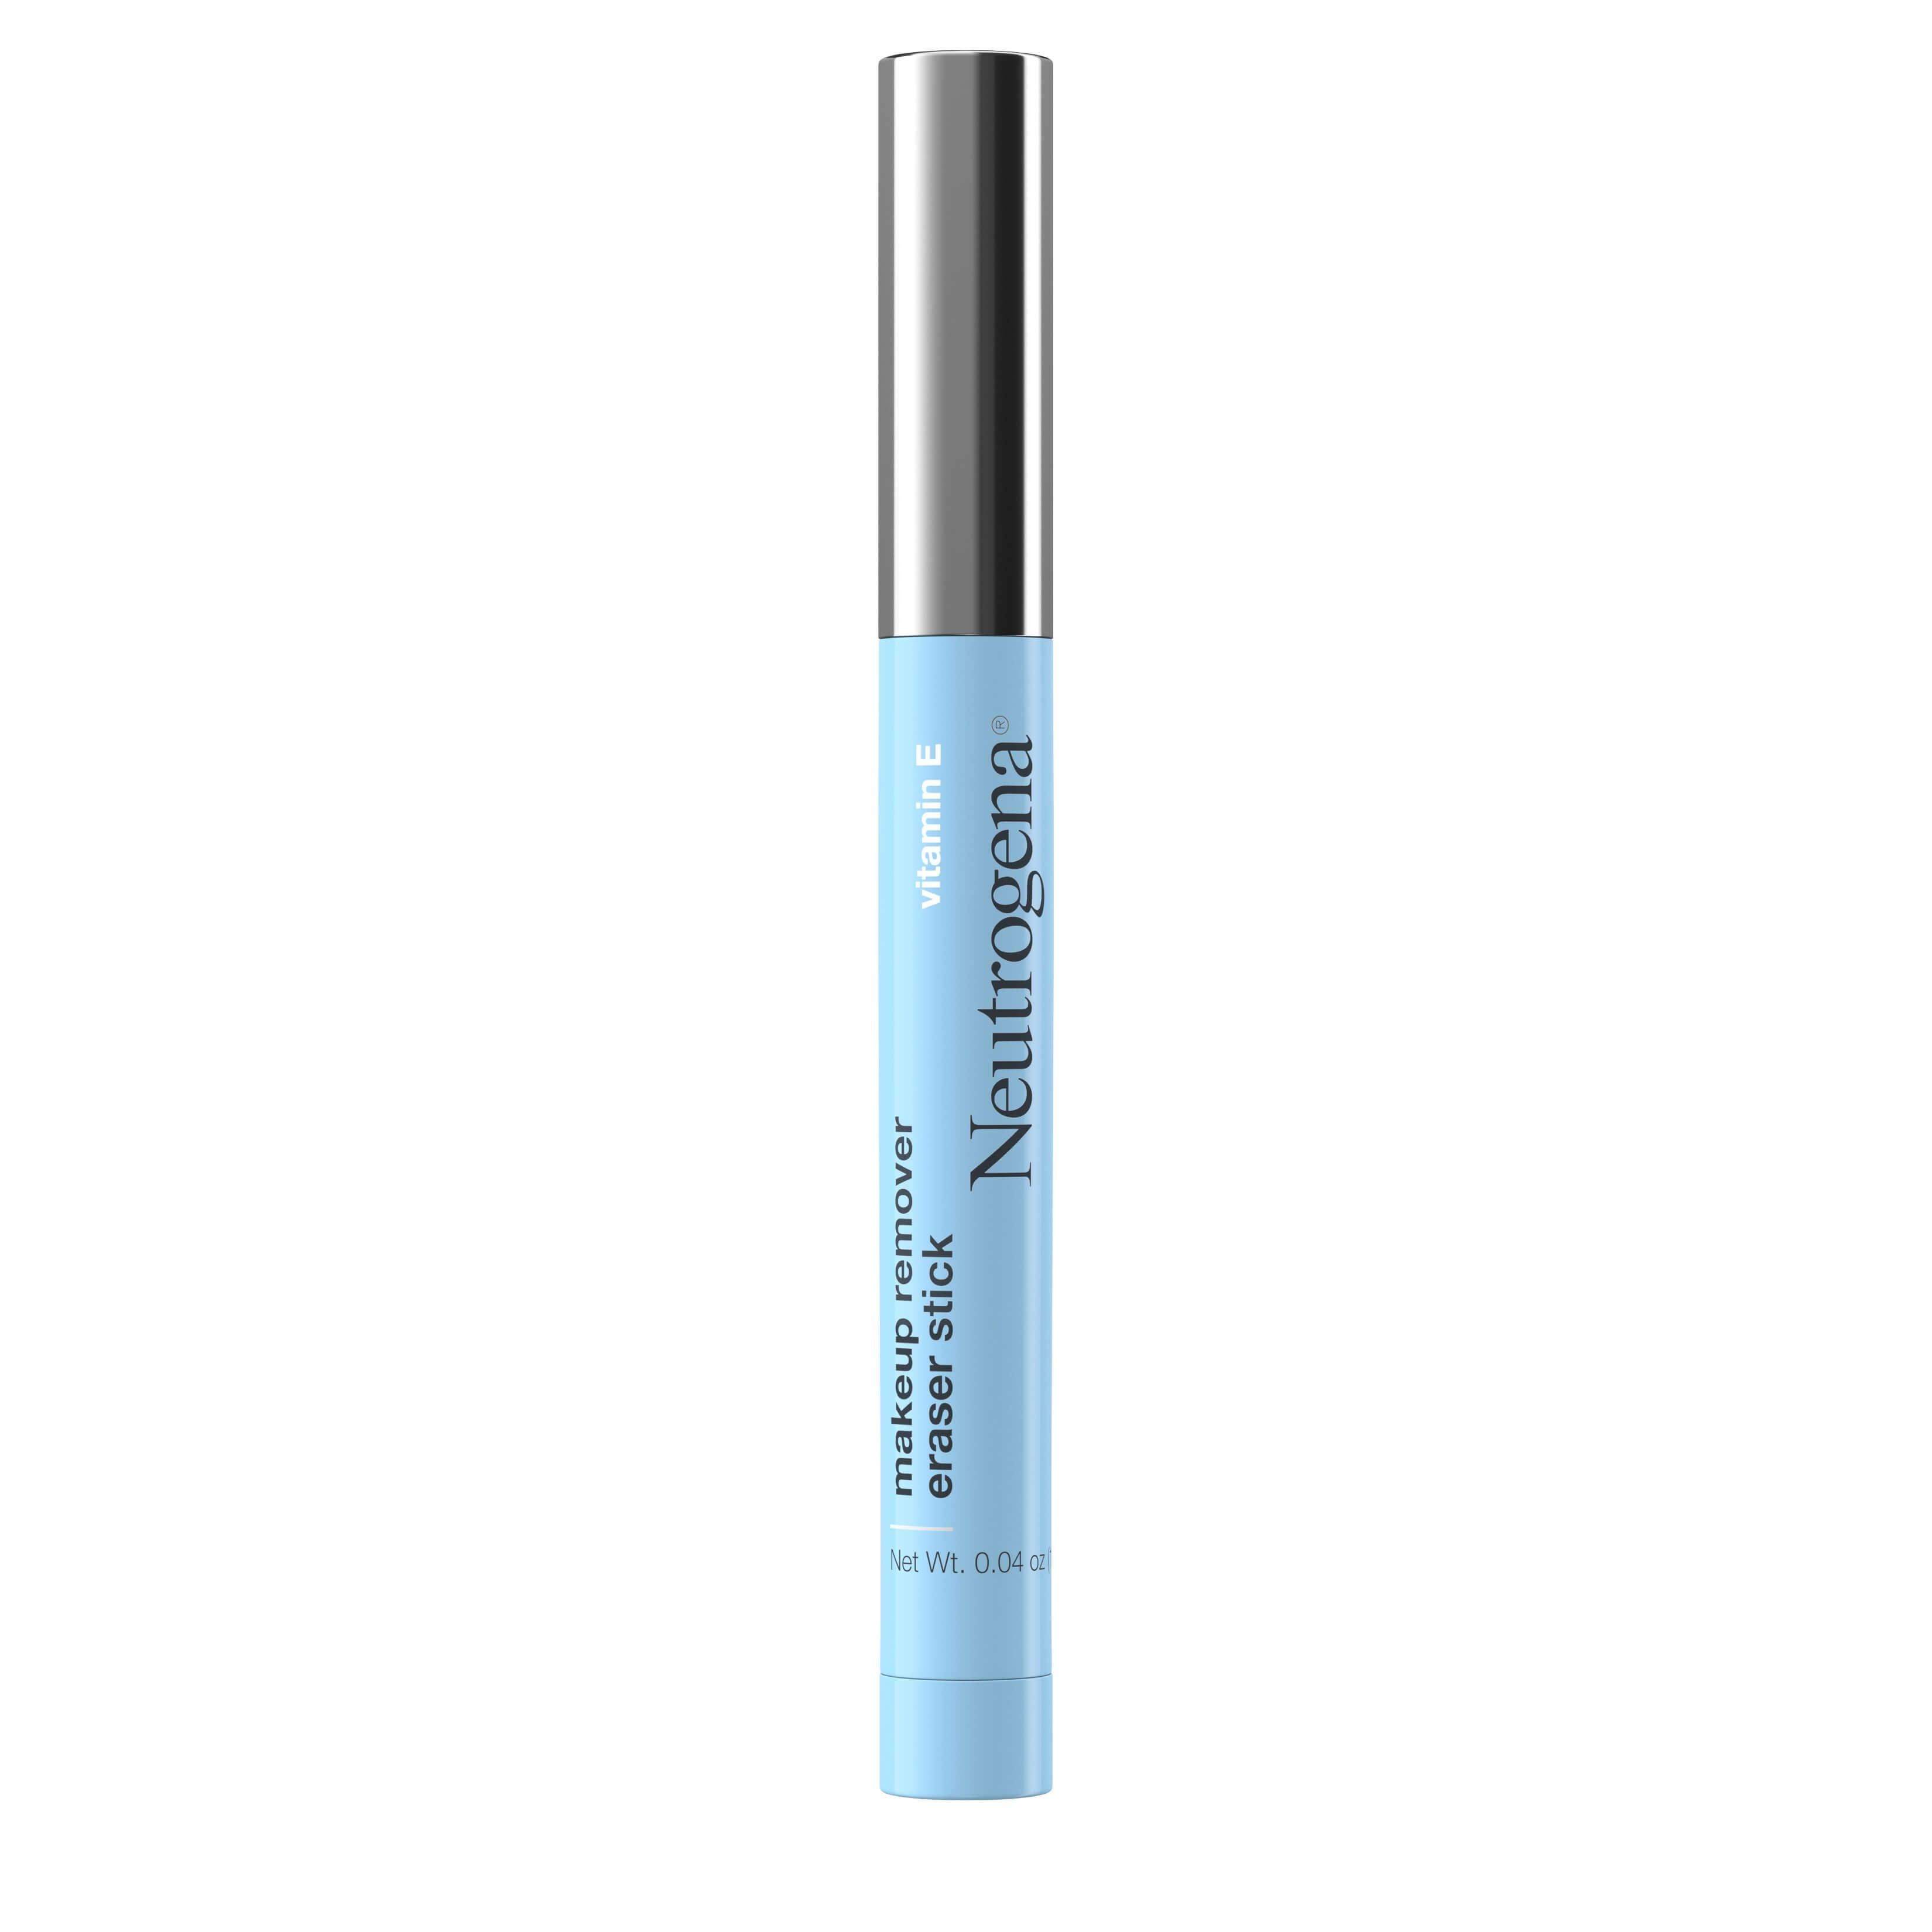 Makeup Remover Stick For Makeup Mistakes in 2020 Beauty